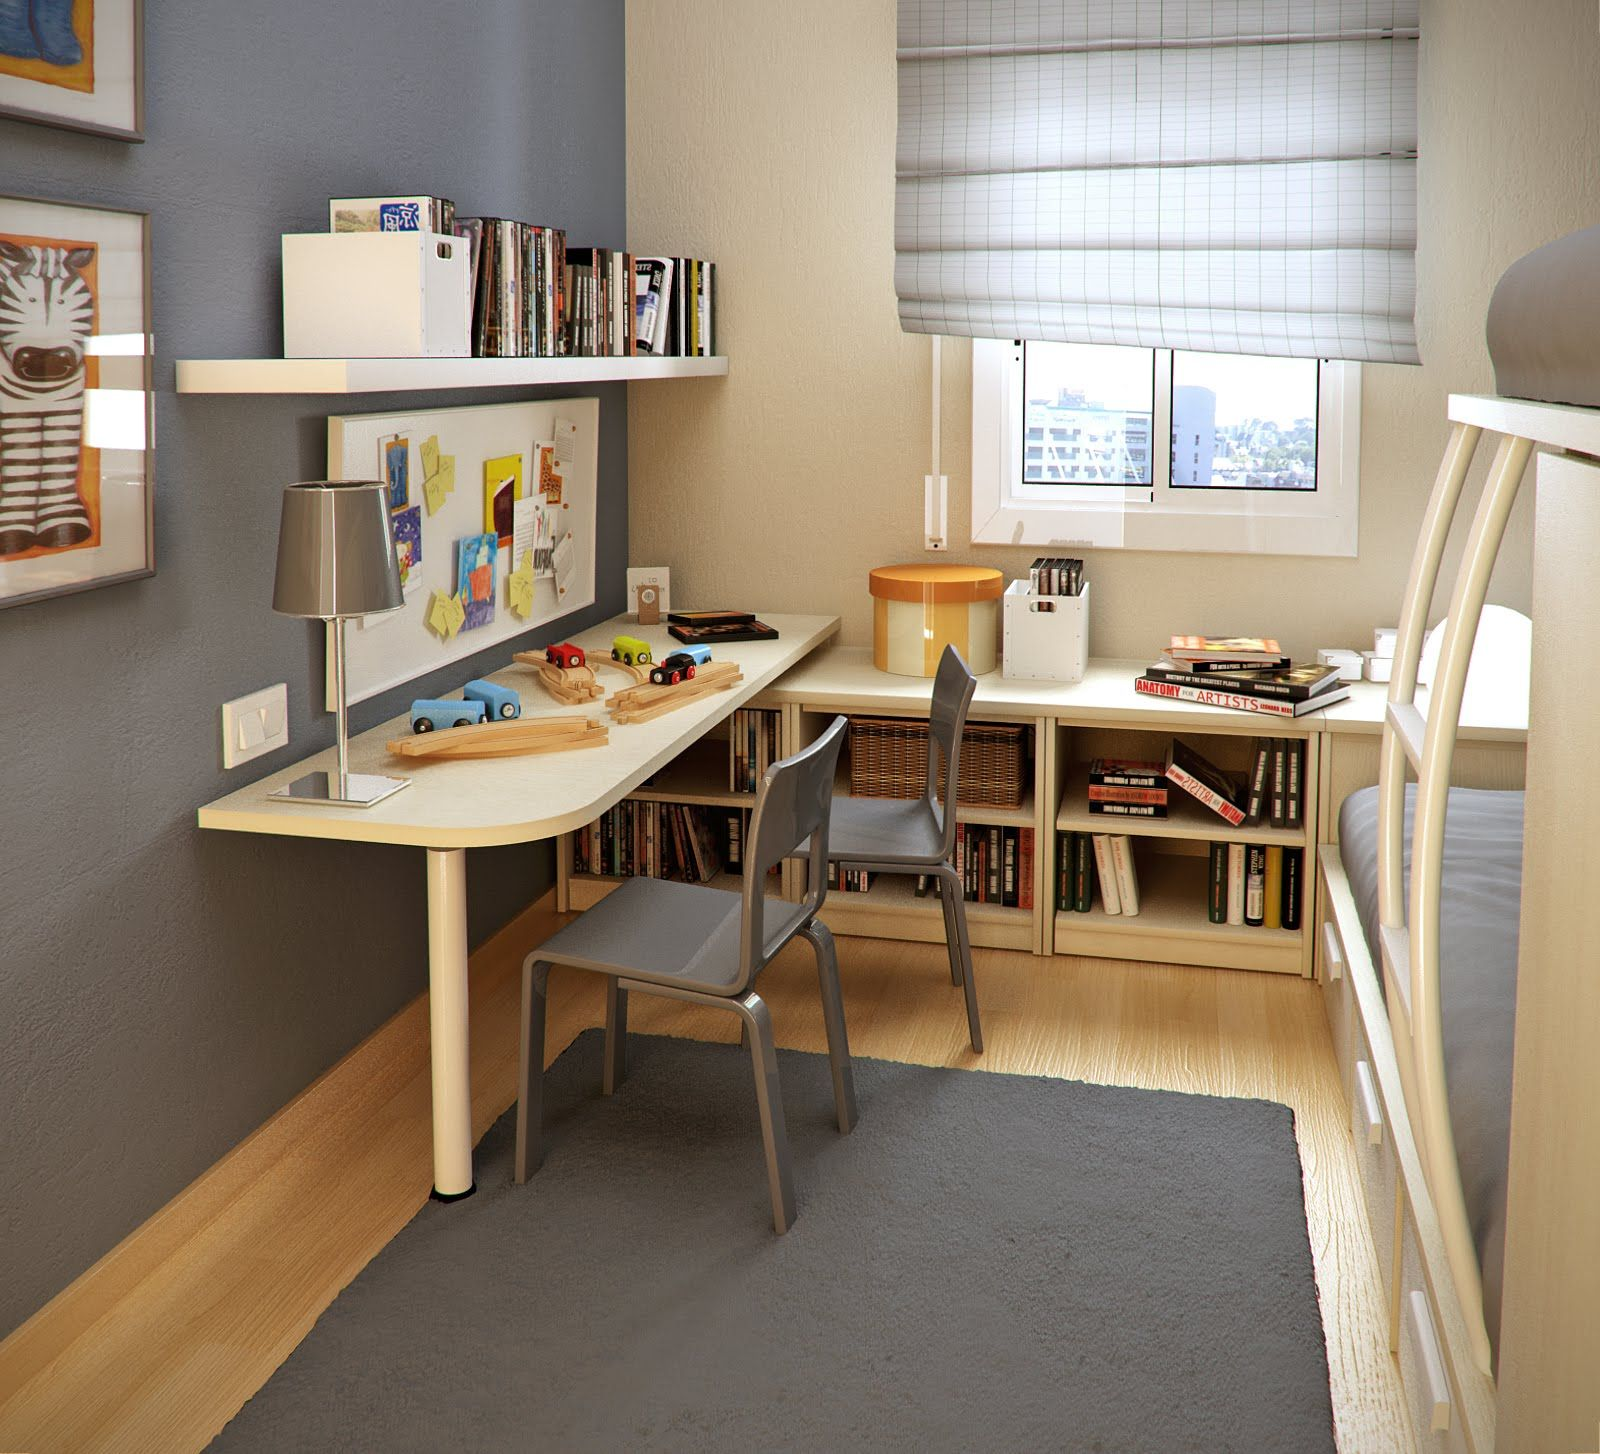 Kids Rooms Small Study Room Designs Small Spaces Kids Room